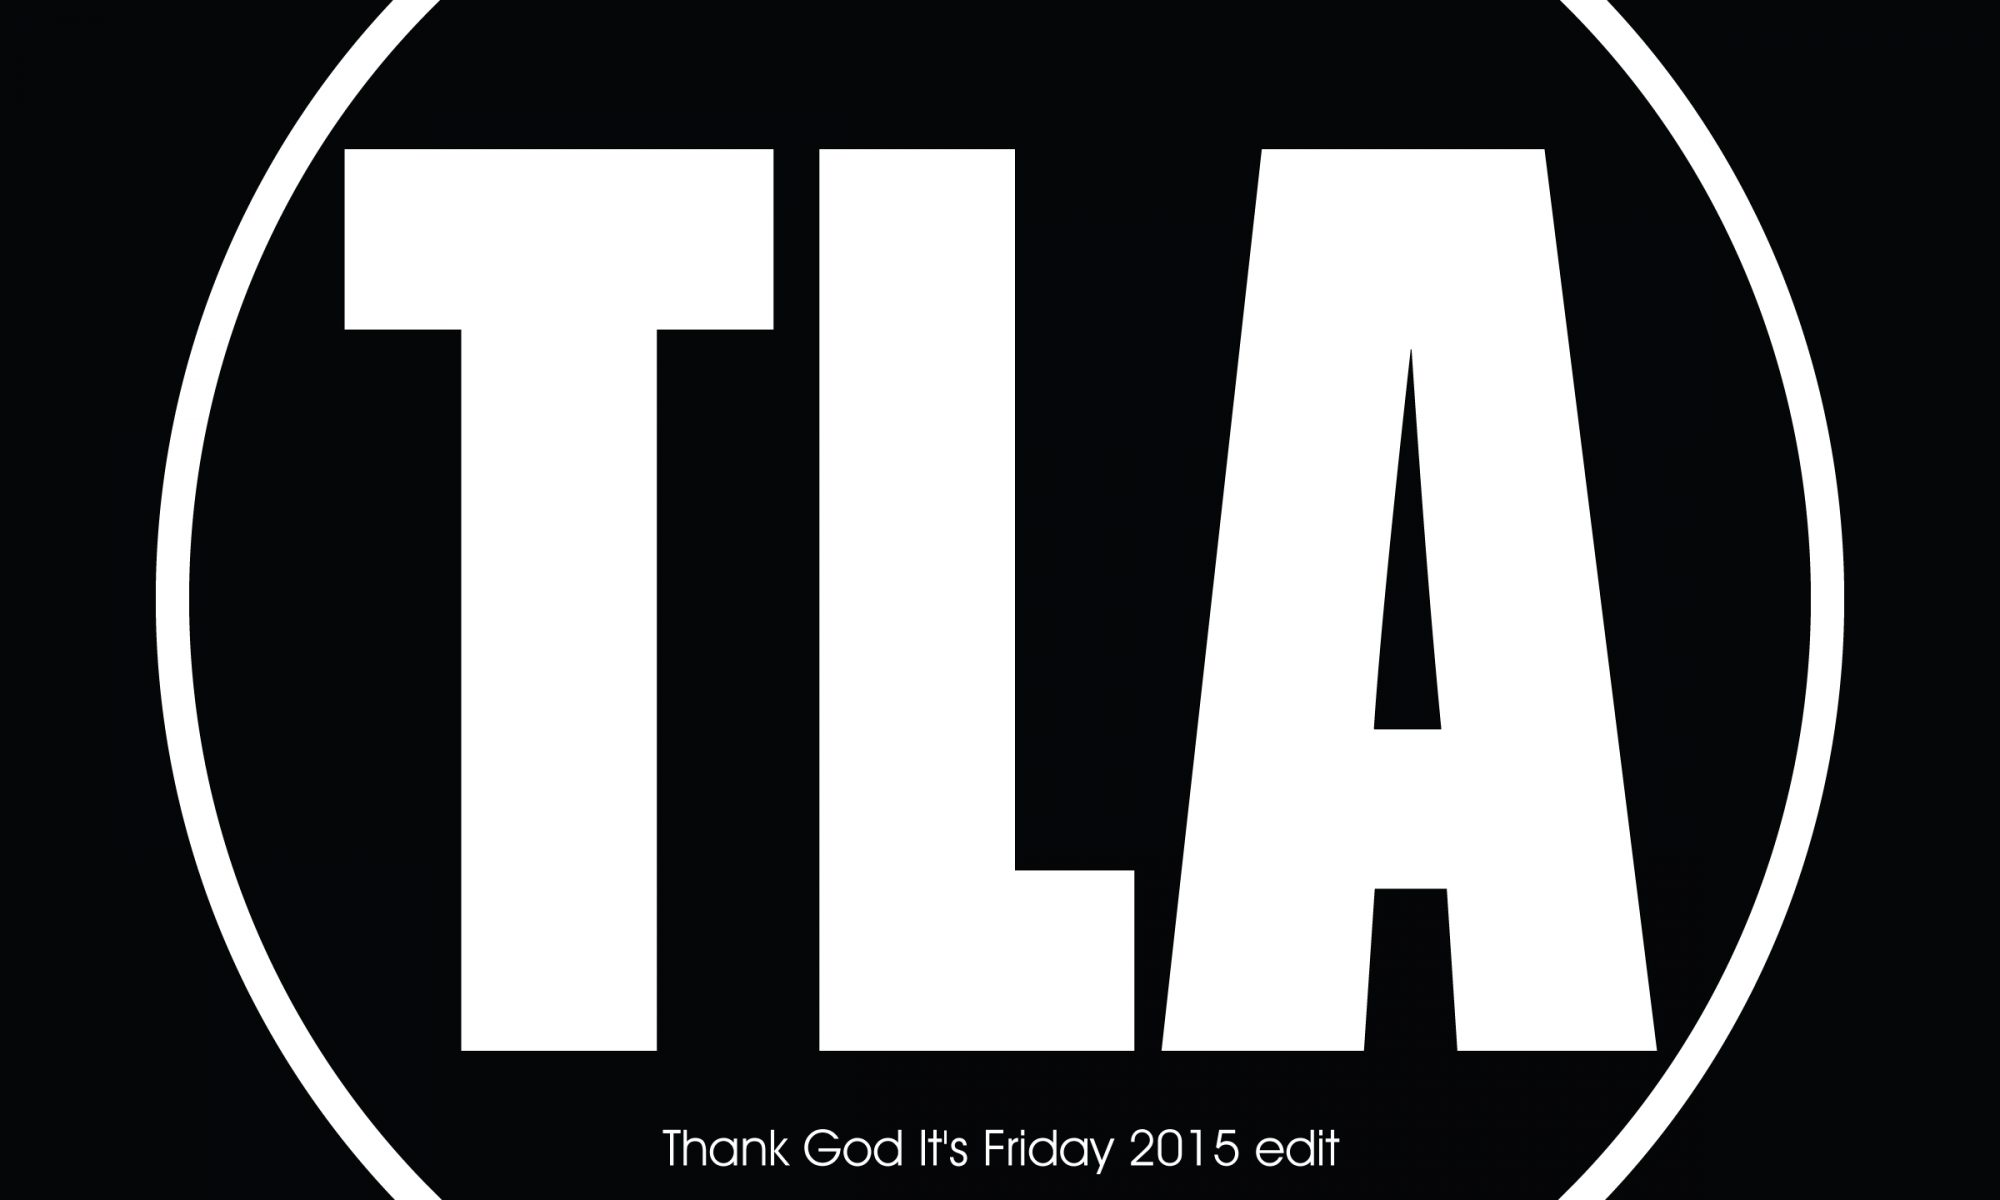 TLA - Thank God it's Friday